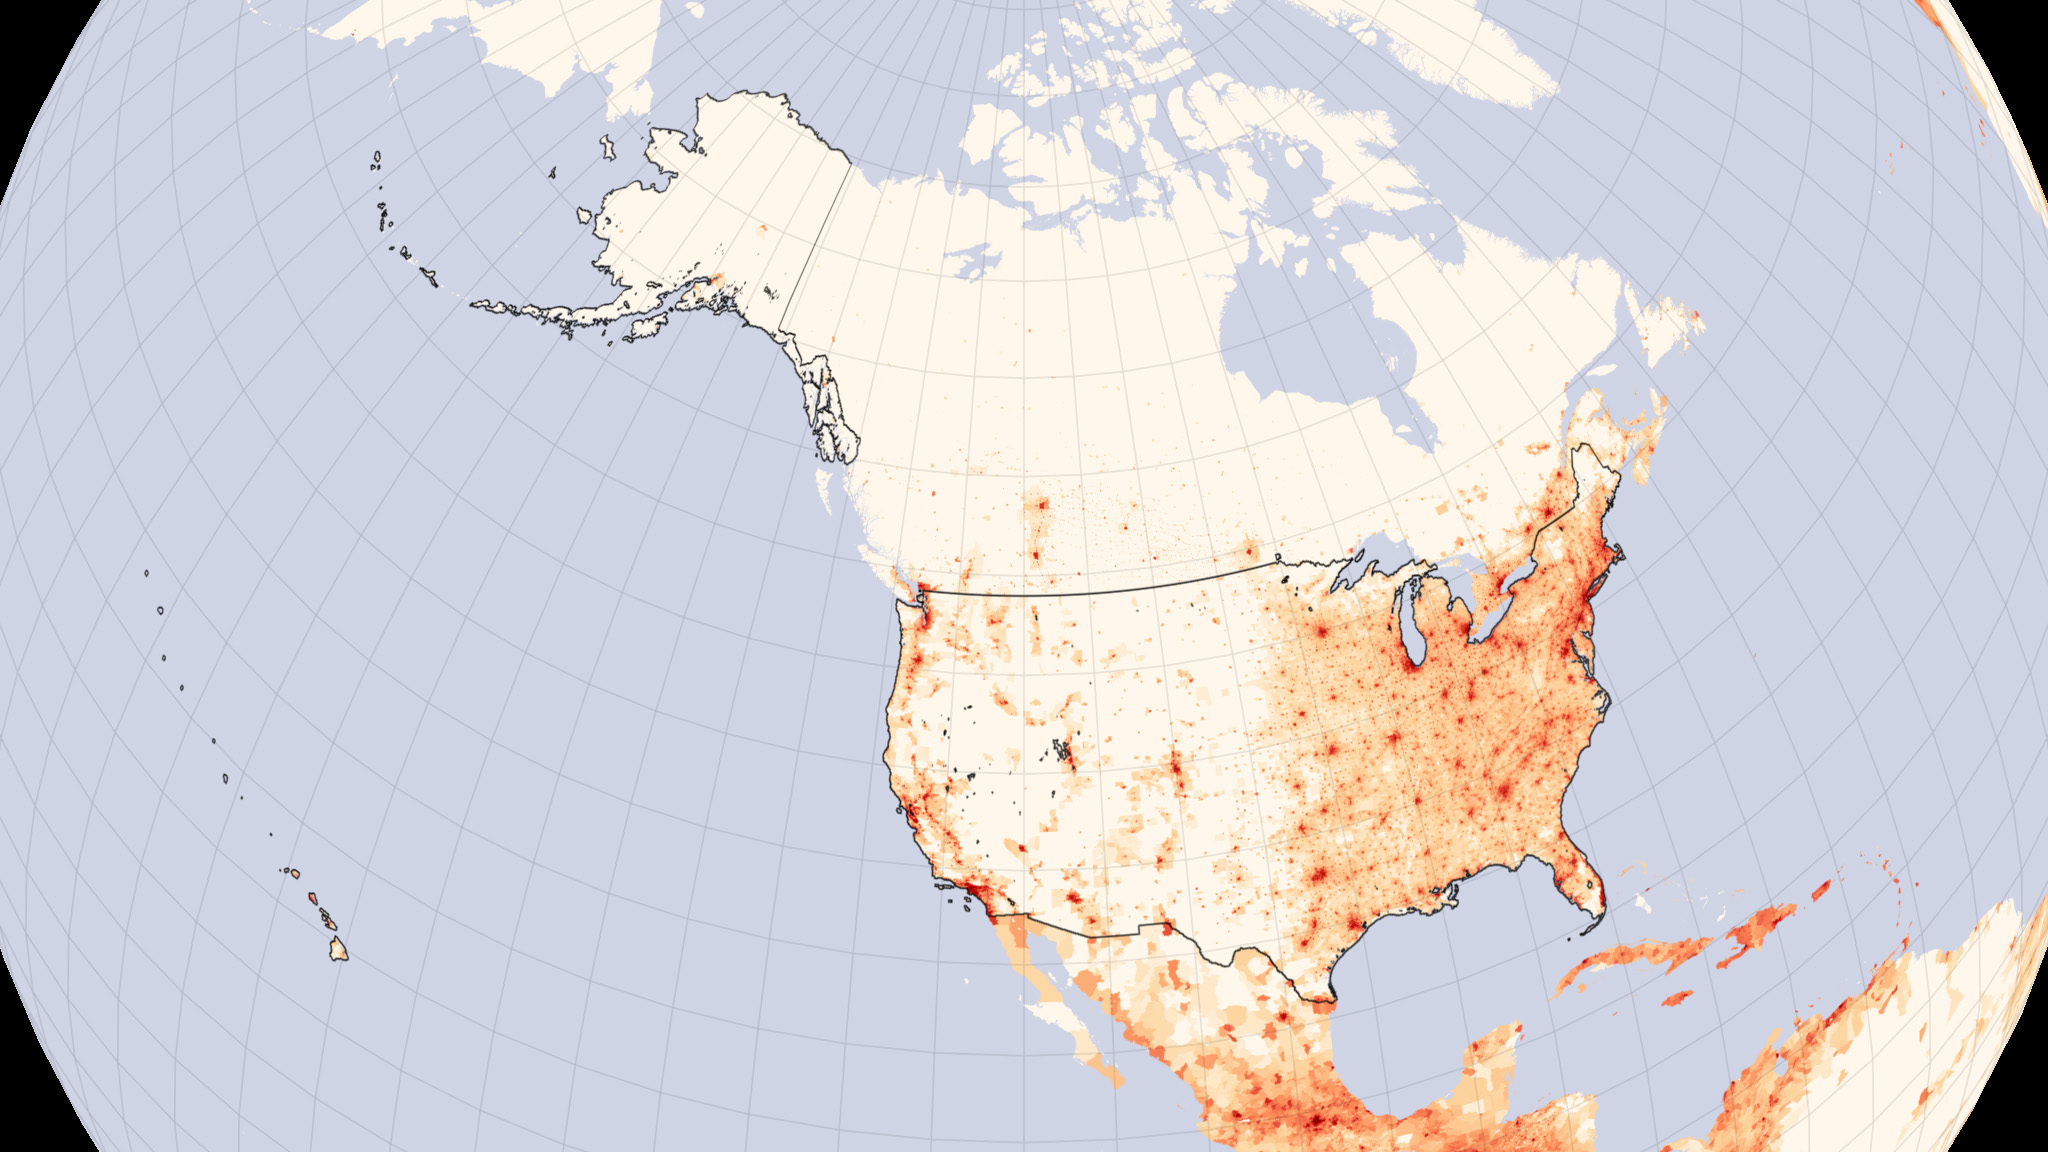 FileUs Population Lrgjpg Wikimedia Commons - Map of us by population